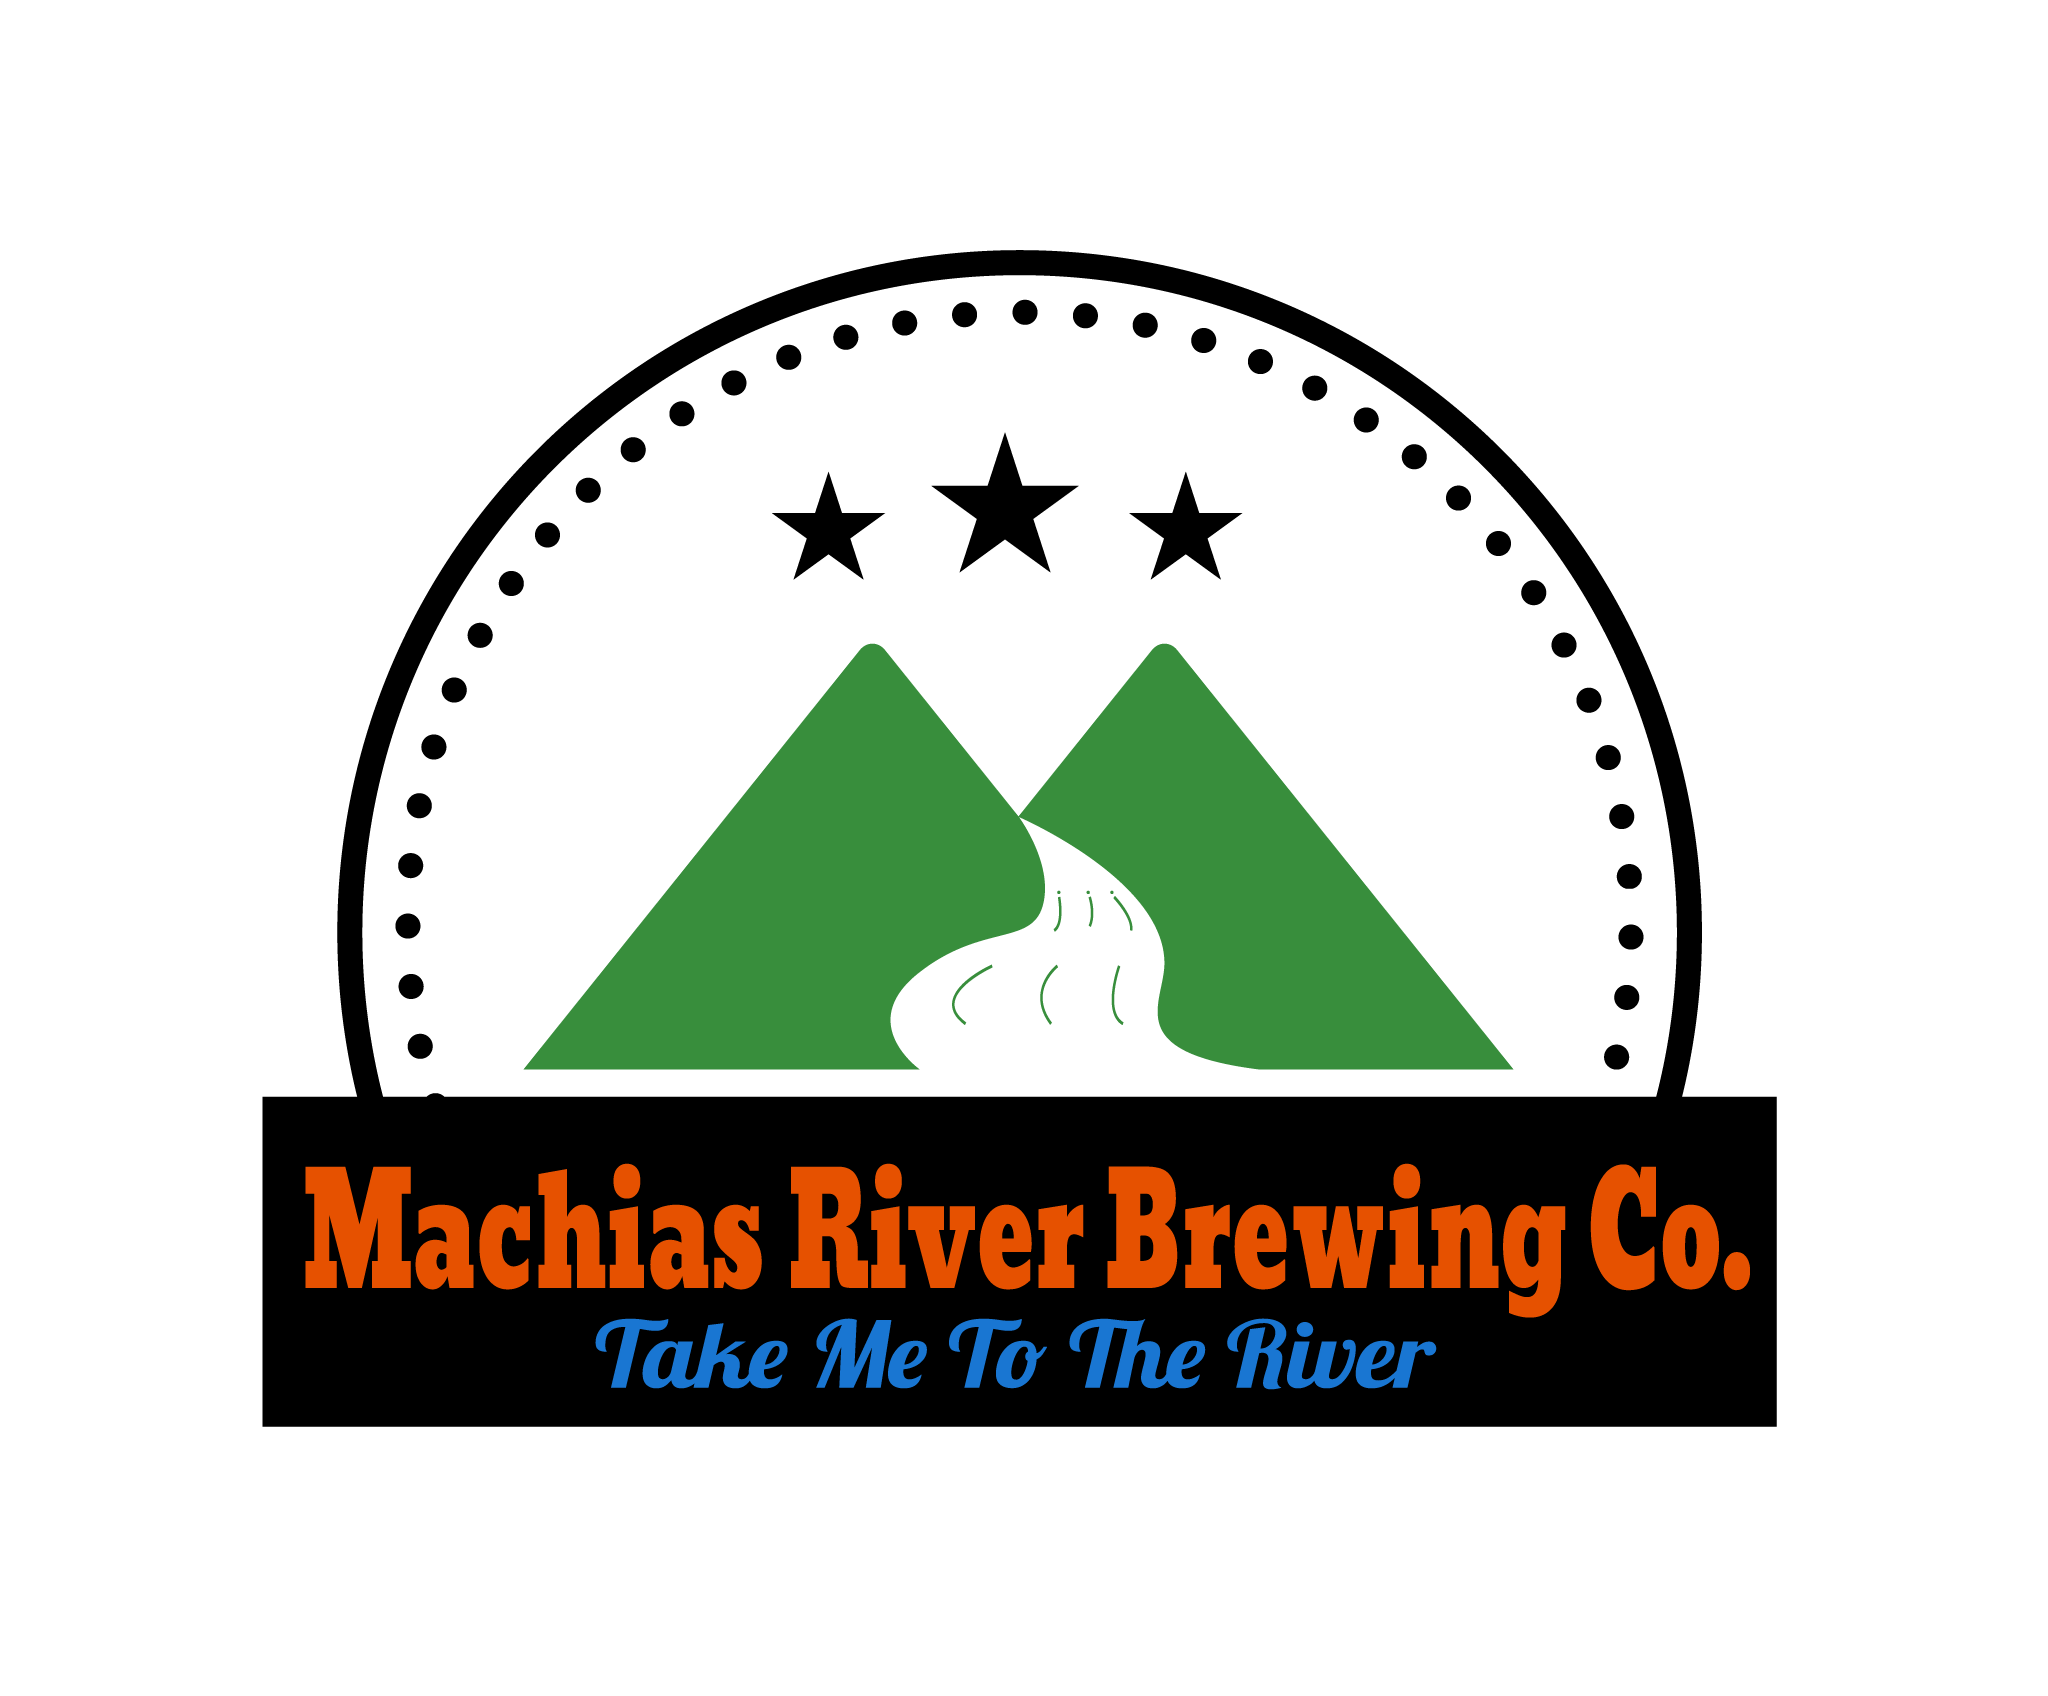 Machias River Brewing Company